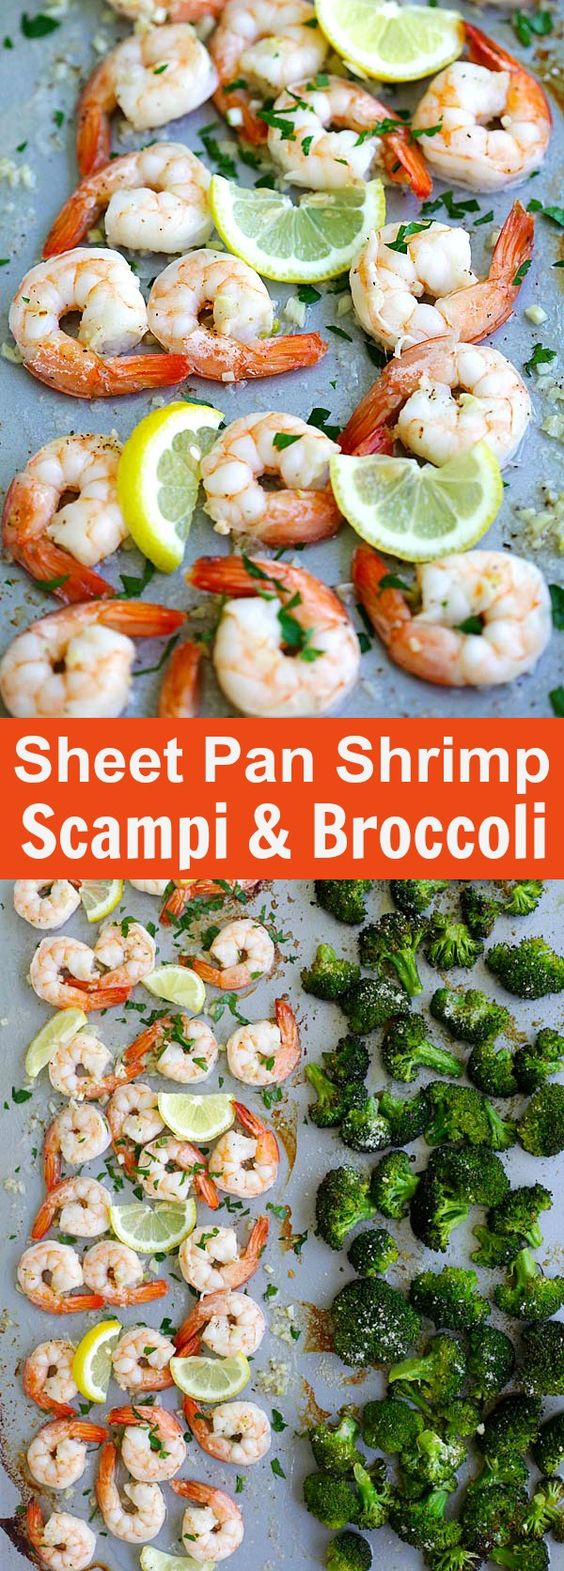 Sheet Pan Shrimp Scampi and Roasted Broccoli – the best shrimp scampi and Parmesan broccoli in one pan. So easy, delicious and dinner takes 20 mins | rasamalaysia.com